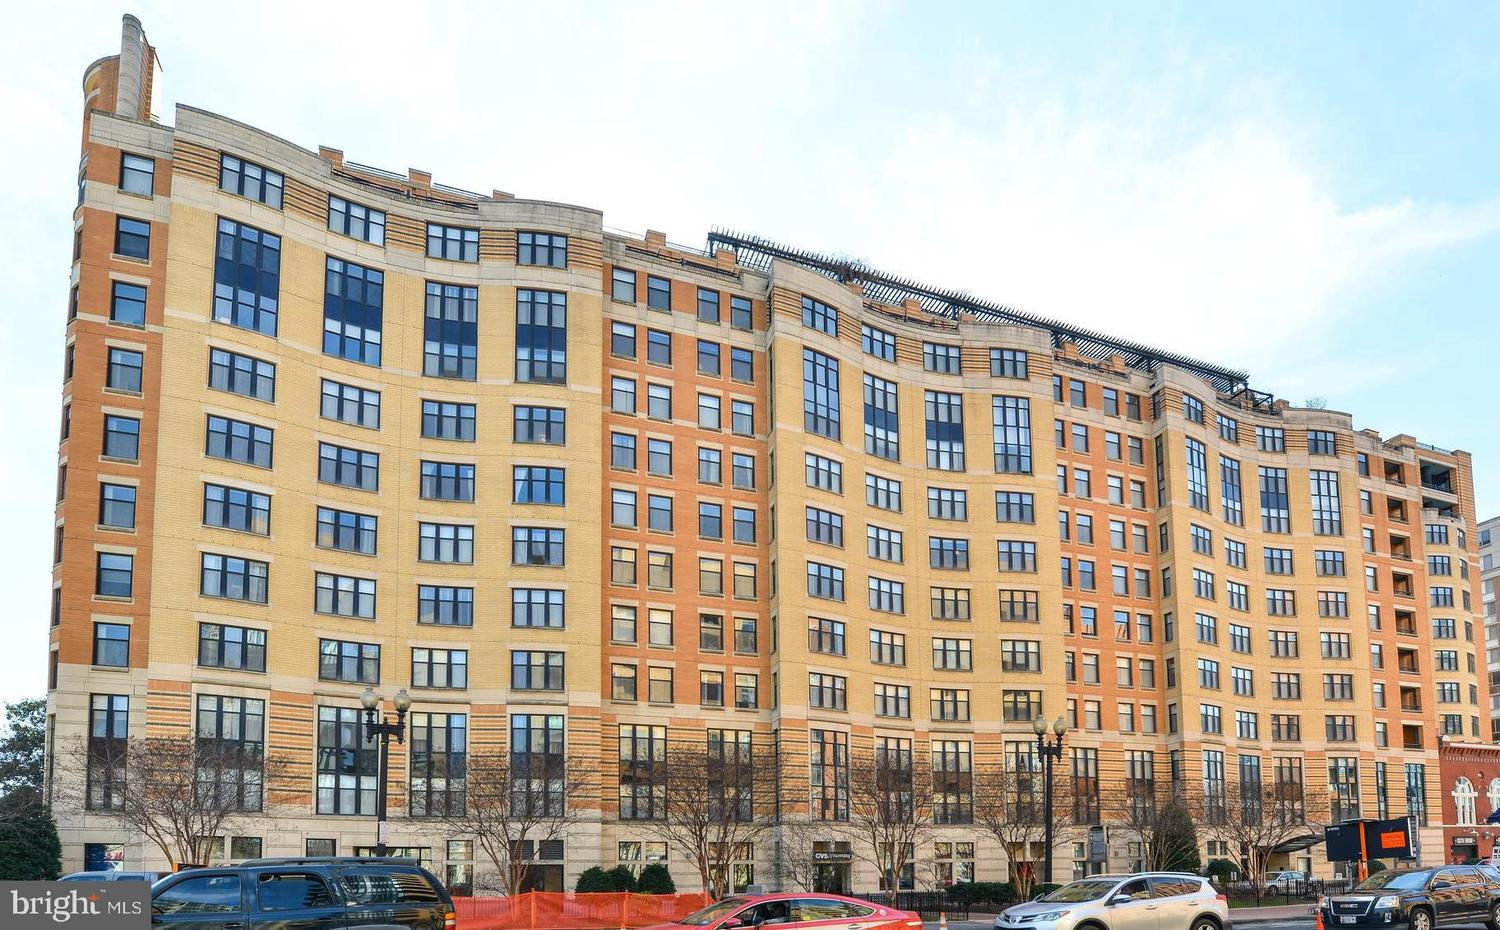 400 Massachusetts Avenue Northwest, Unit 909 Washington, DC 20001